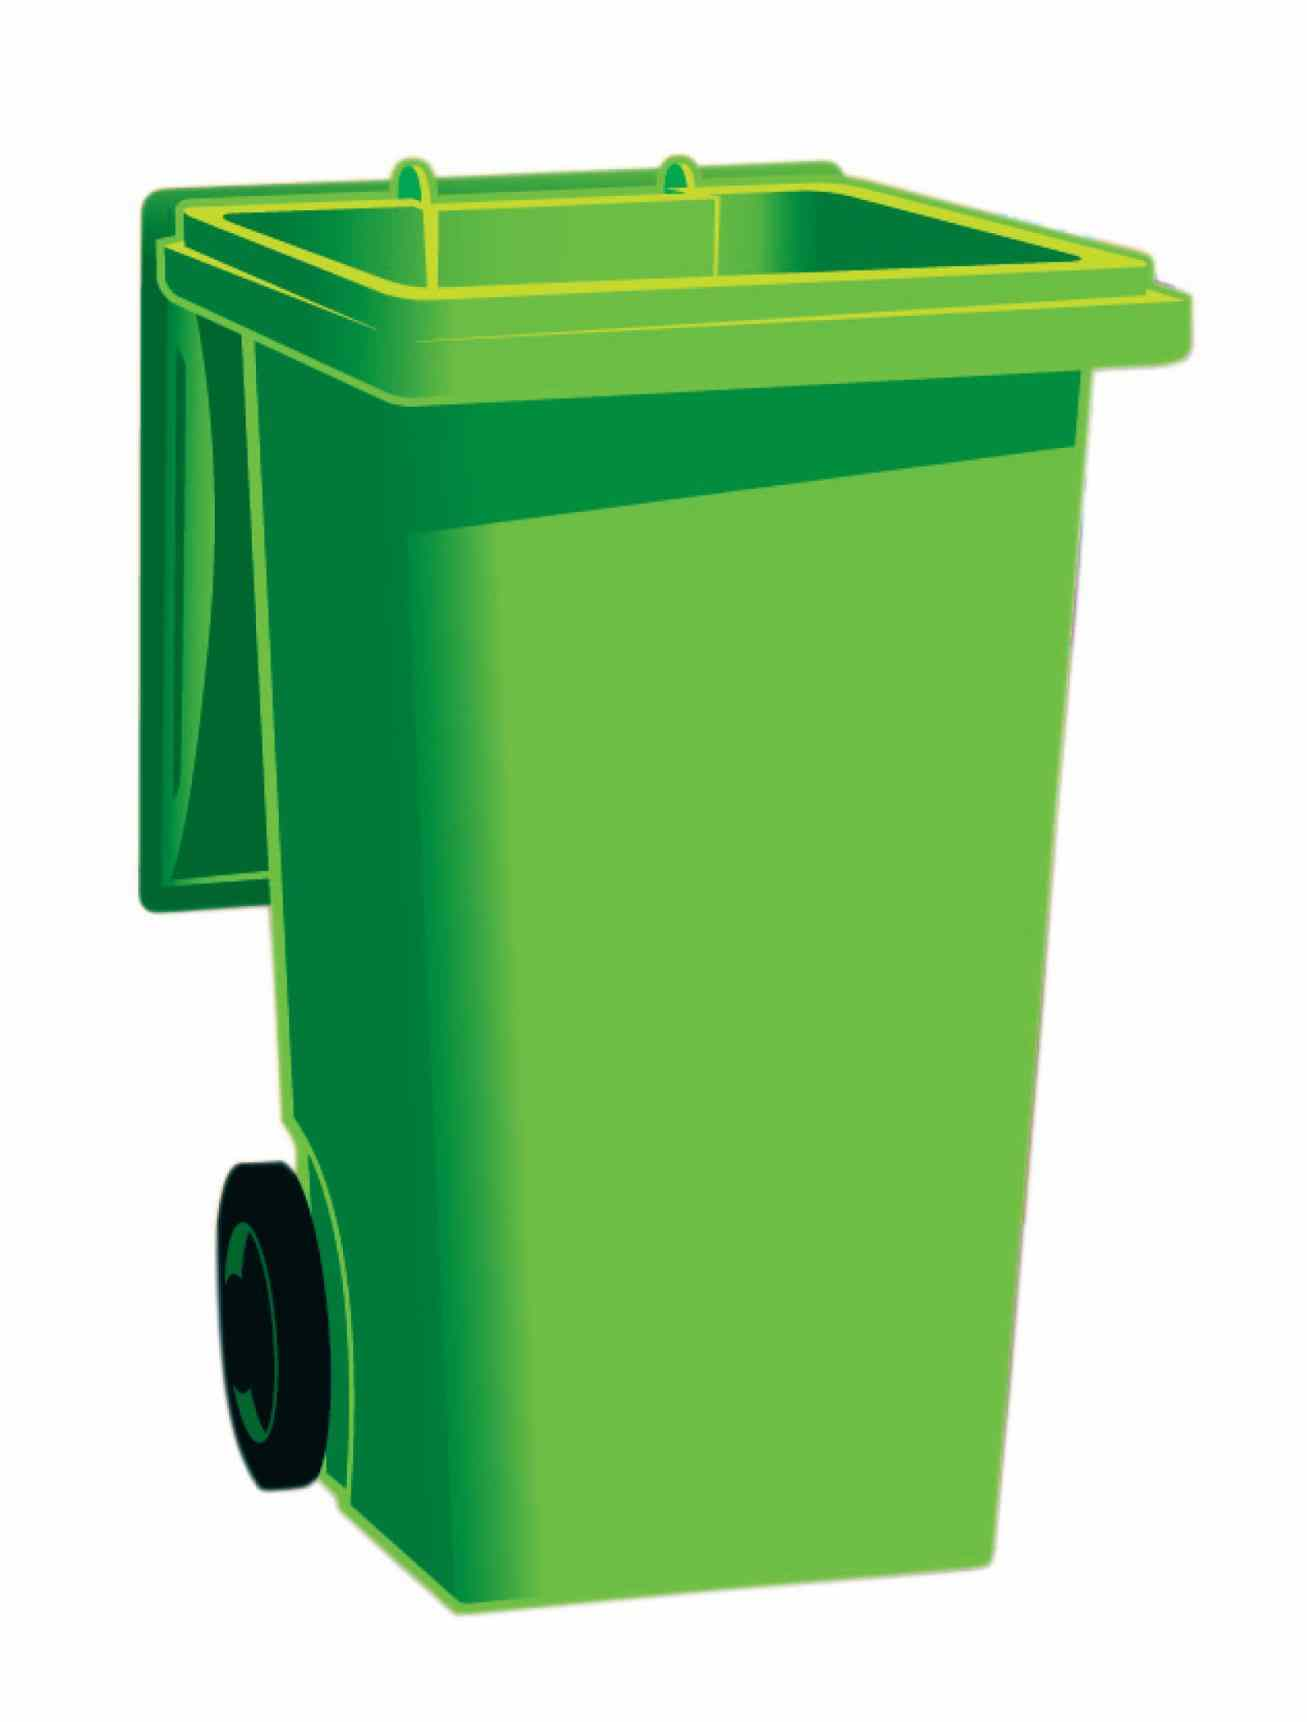 Trash and recyling bin clipart image library library Trash Can Picture | Free download best Trash Can Picture on ... image library library